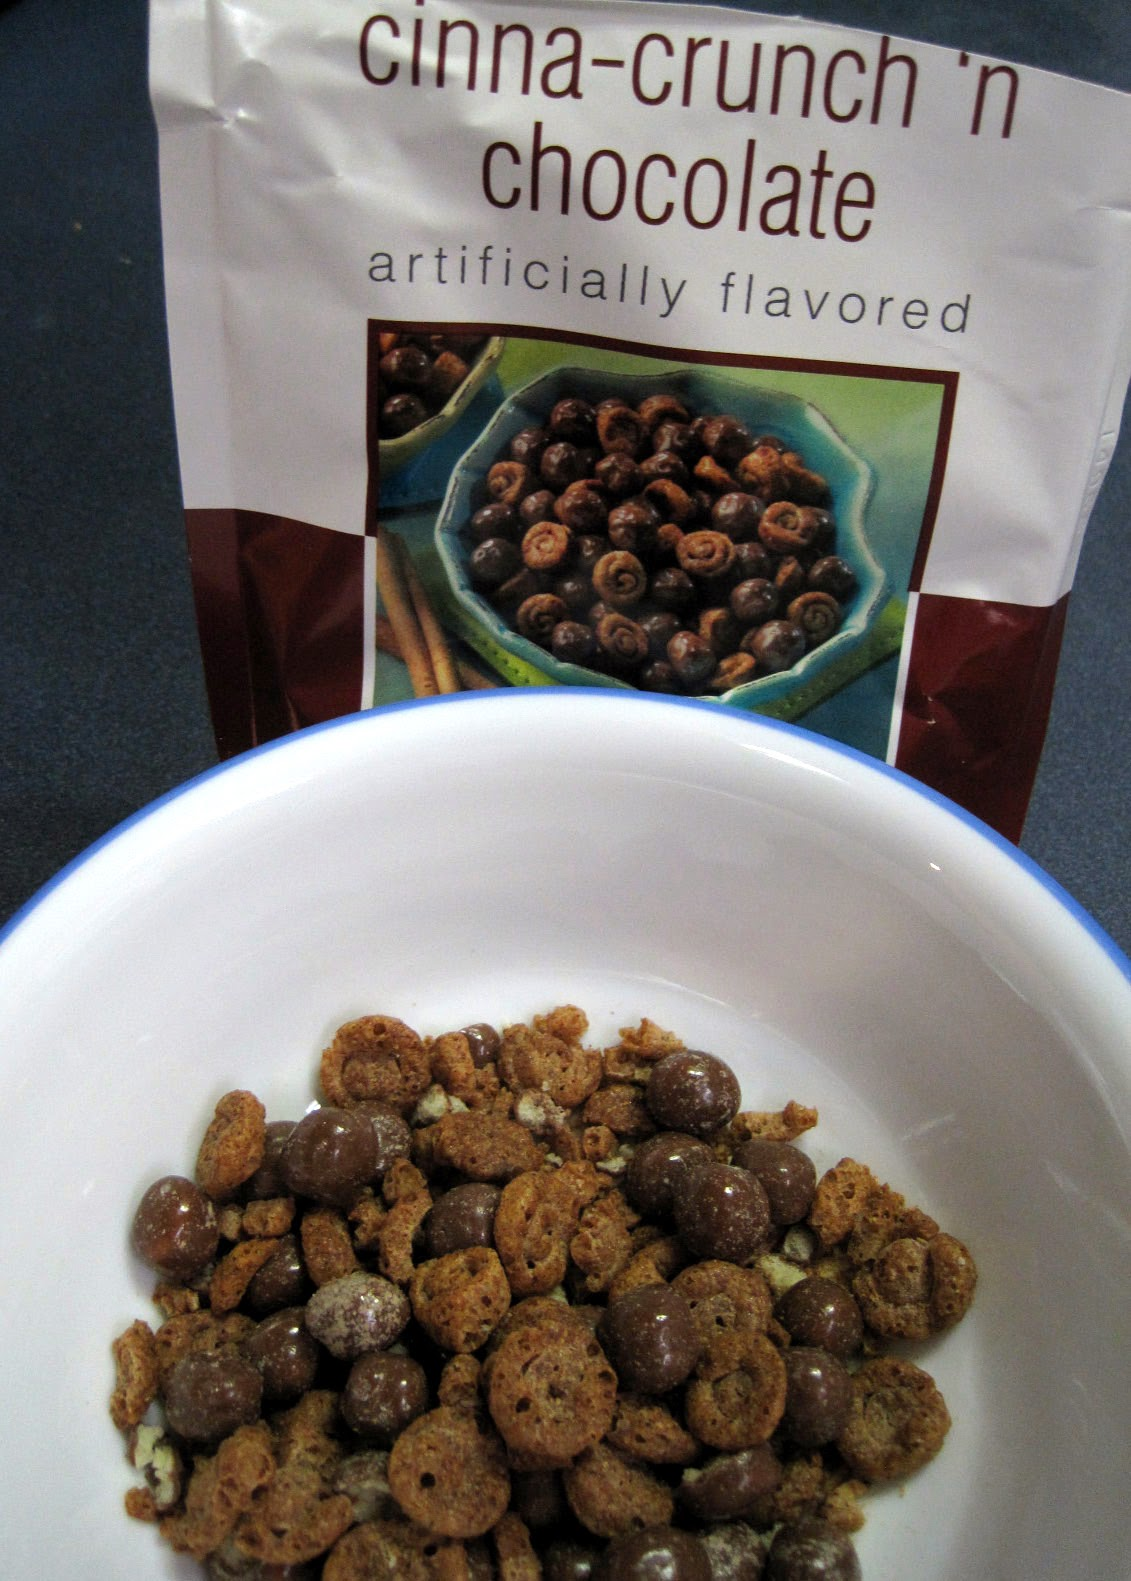 cinna crunch n chocolate low carb snack from diet direct review